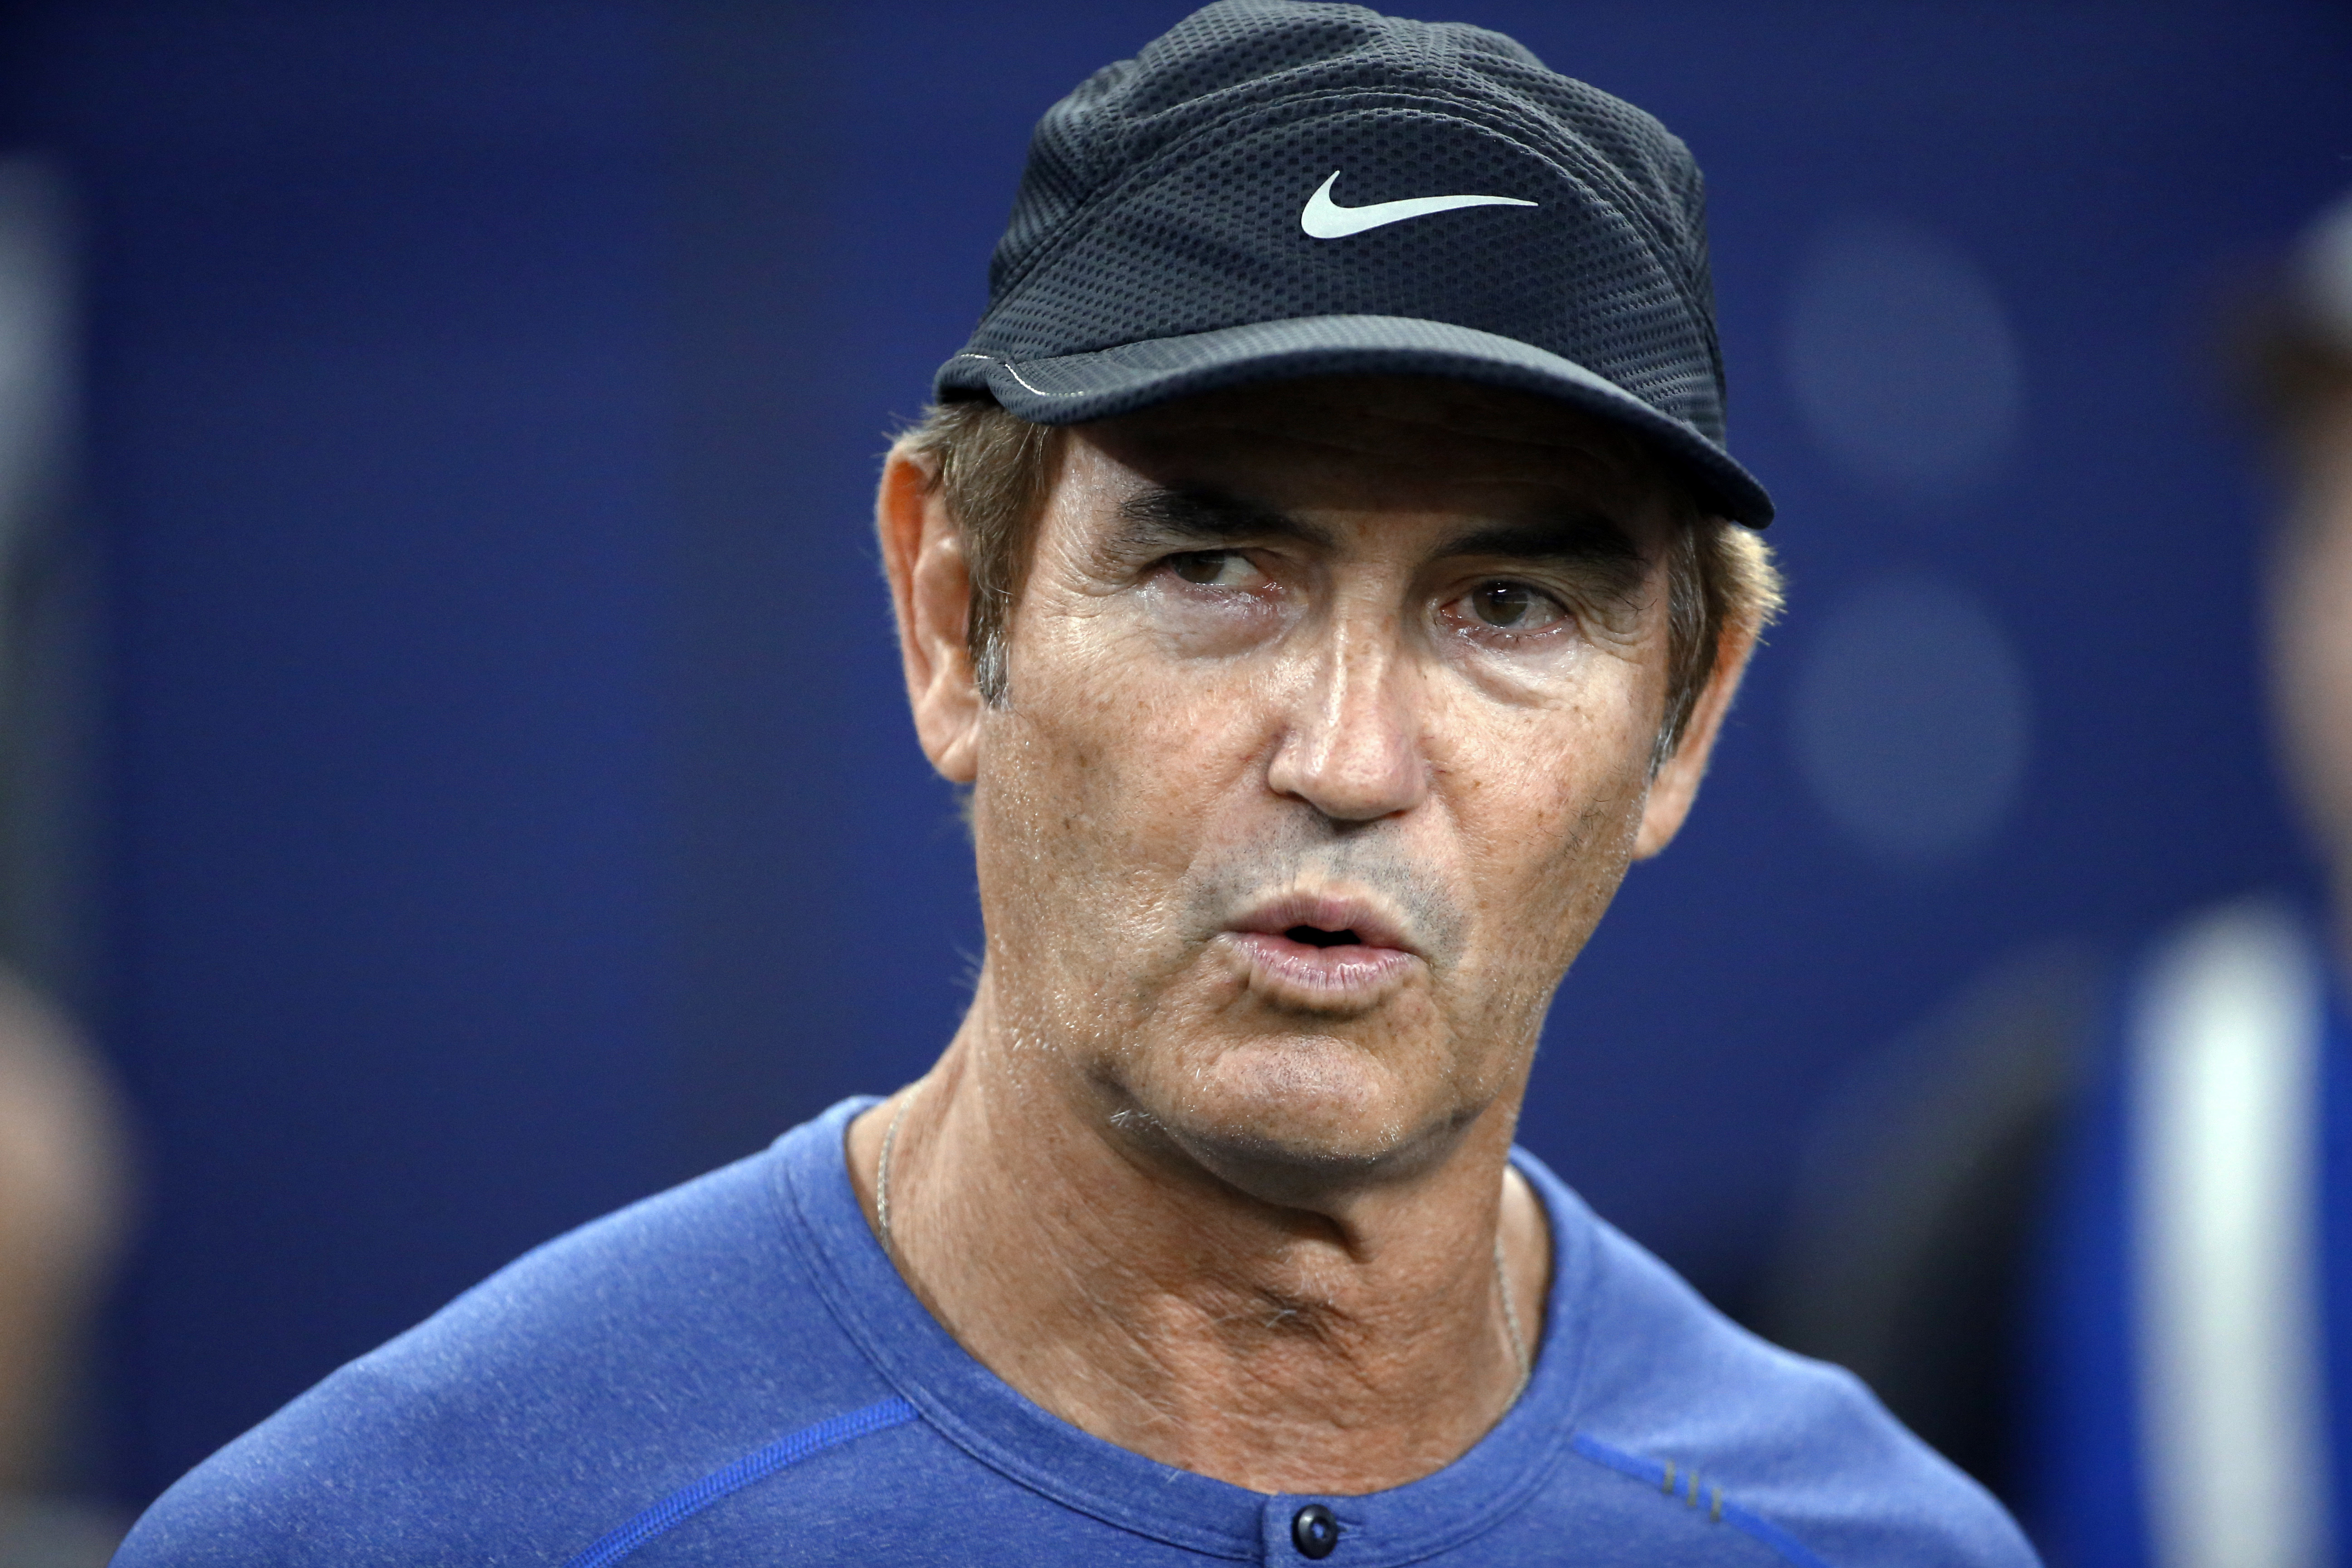 FILE - In this Sept. 25, 2016, file photo, former Baylor football coach Art Briles watches the Dallas Cowboys and the Chicago Bears warm up for an NFL football game in Arlington, Texas. Cleveland Browns coach Hue Jackson defended inviting Briles to work w